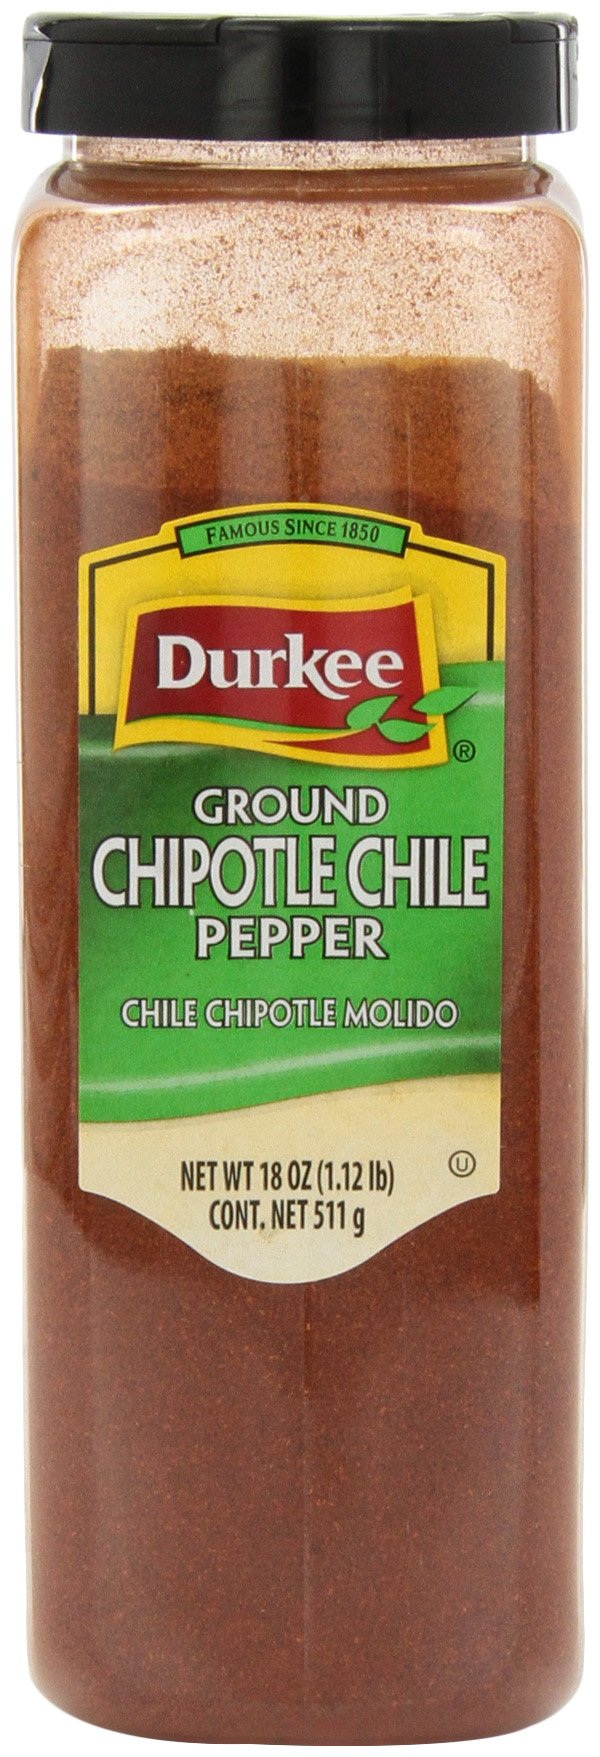 Durkee Chipotle Chile Ground Pepper, 18-Ounce